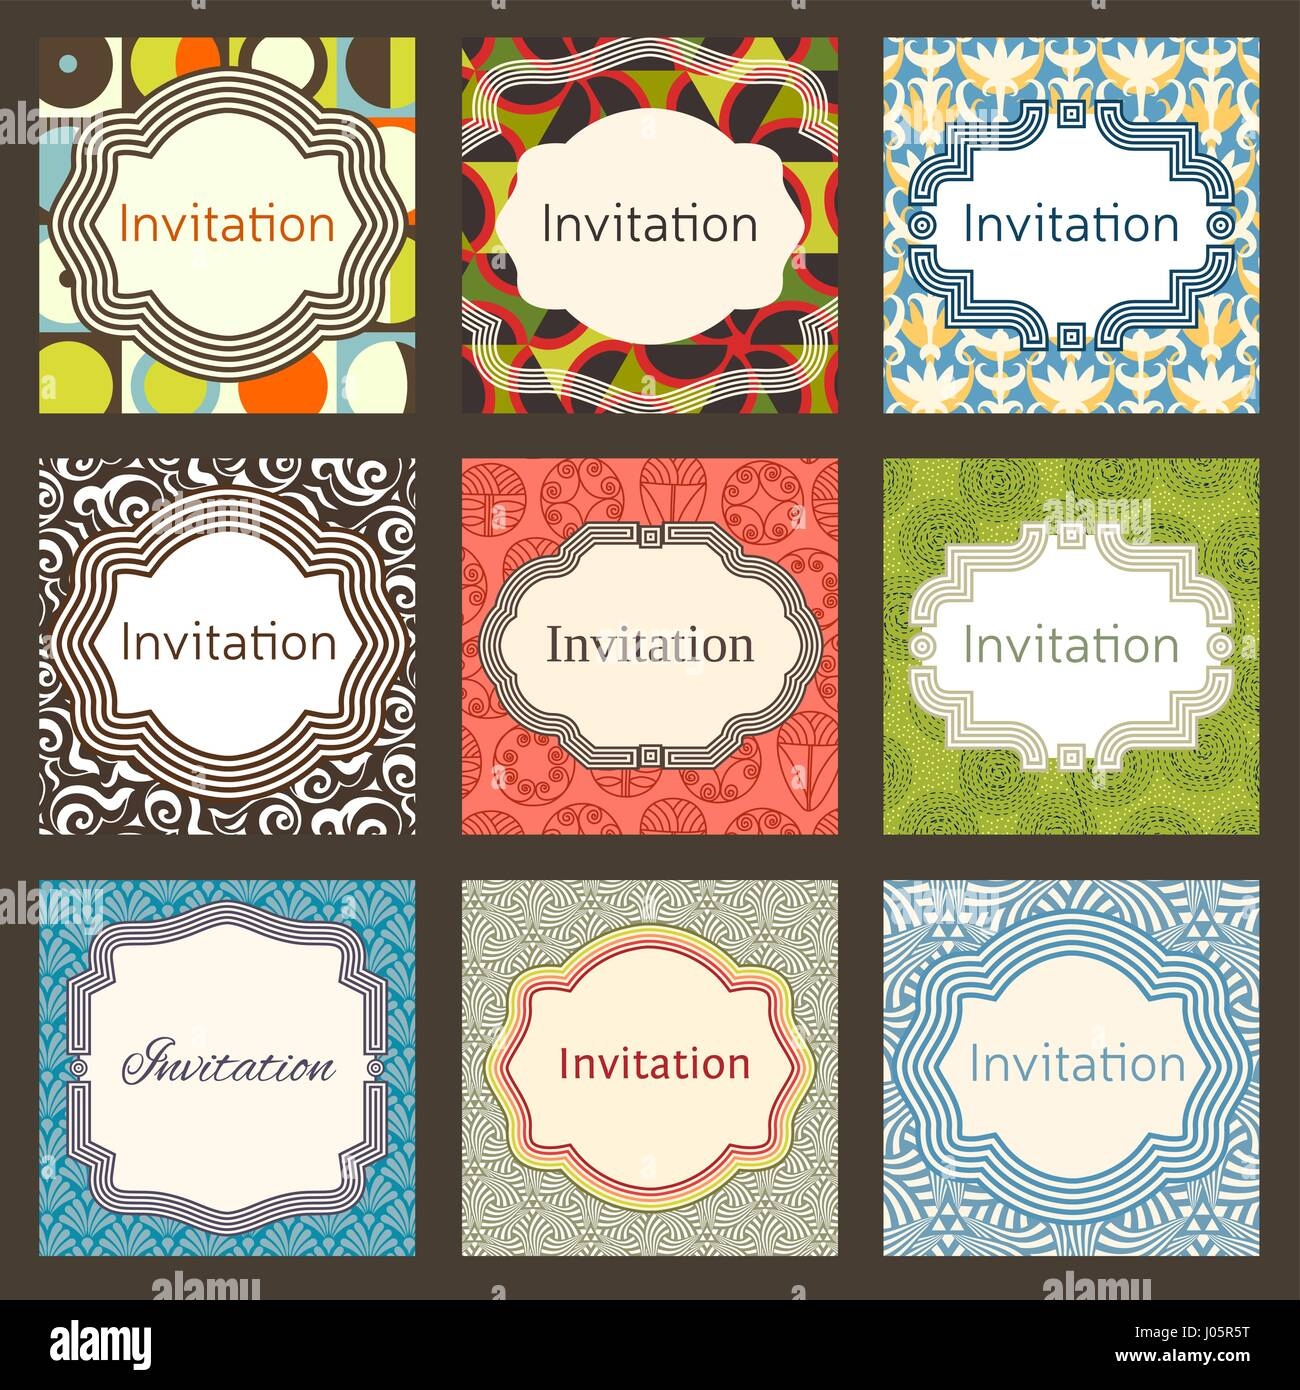 Invitation Card Design Template Set Editable Layout For